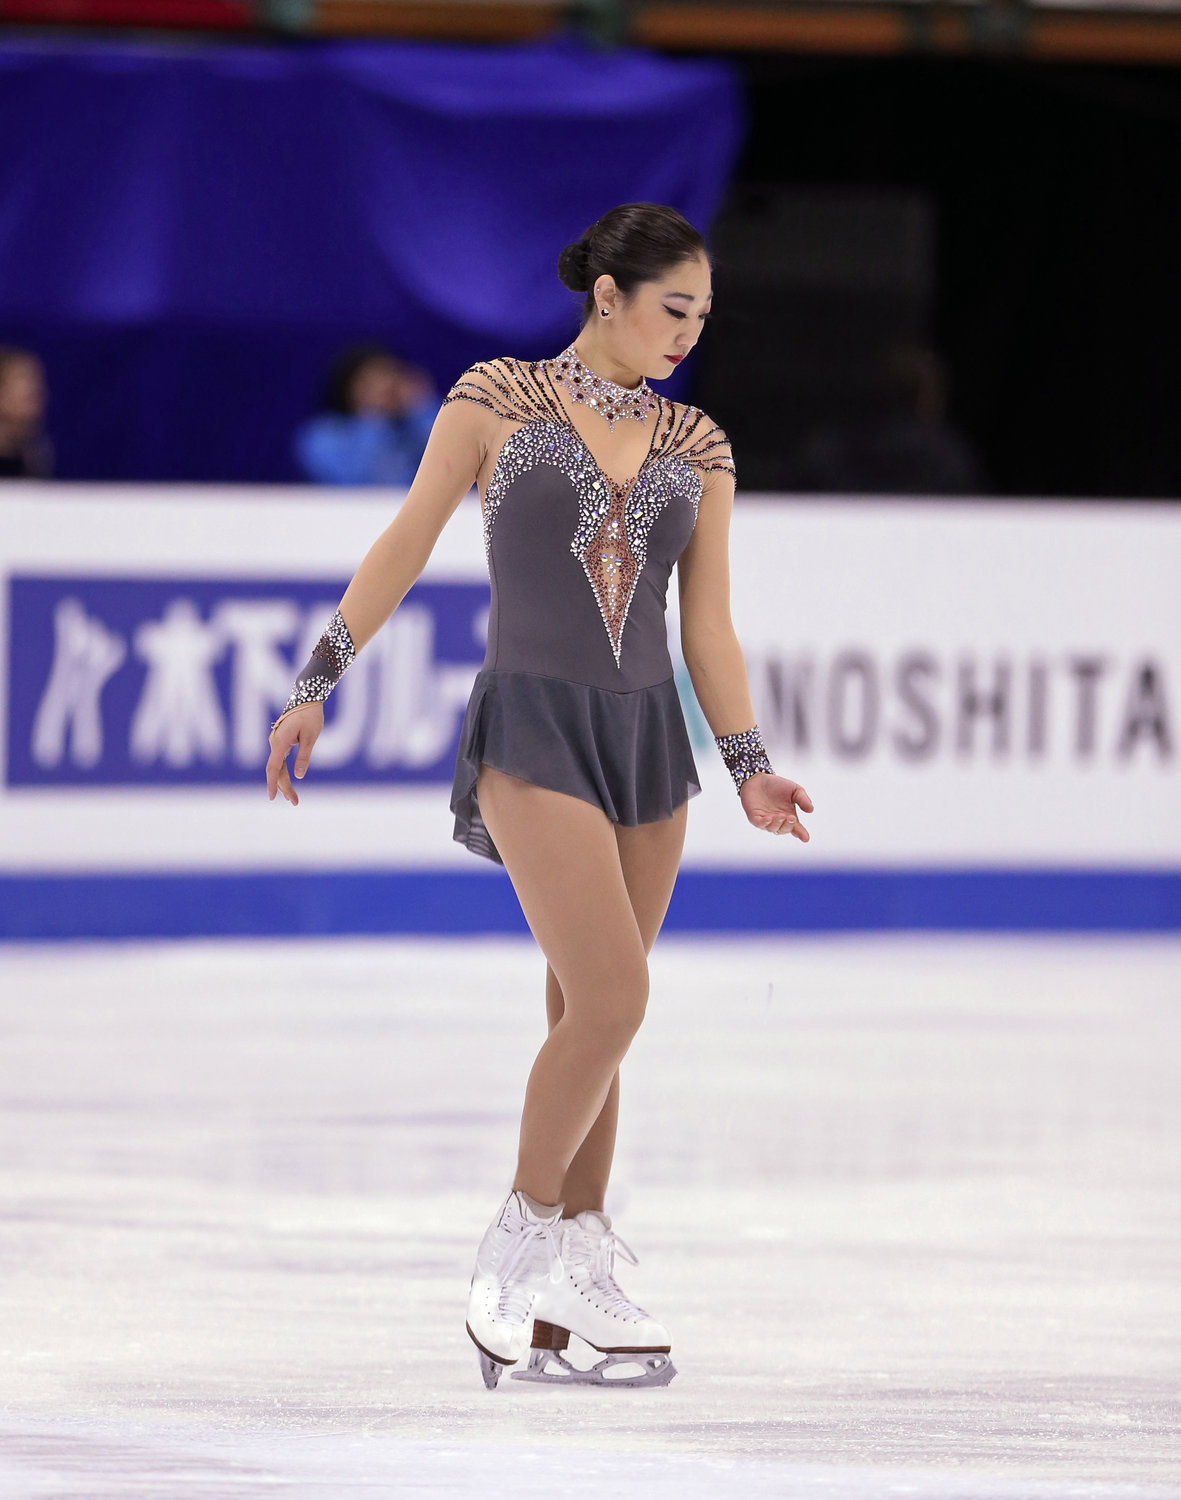 Mirai Nagasu demonstrates the form that keeps her among the world's elite skaters.